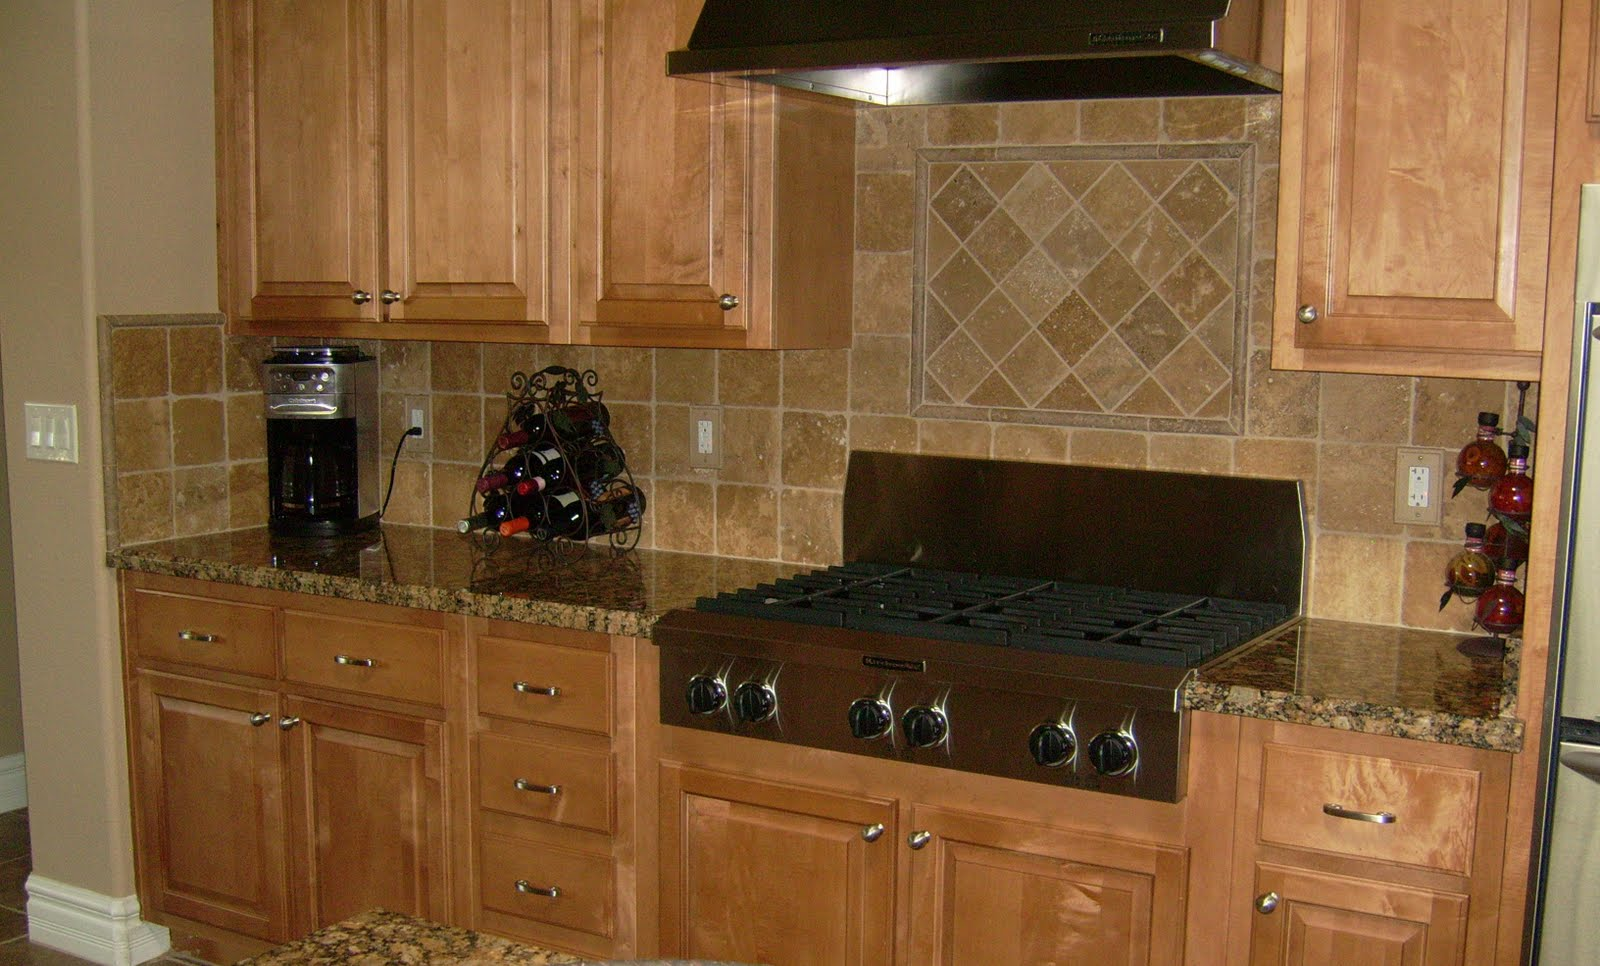 Kitchen Plans On Pictures Kitchen Backsplash Ideas 6x6 Tumbled Stone Kitchen  Backsplash .